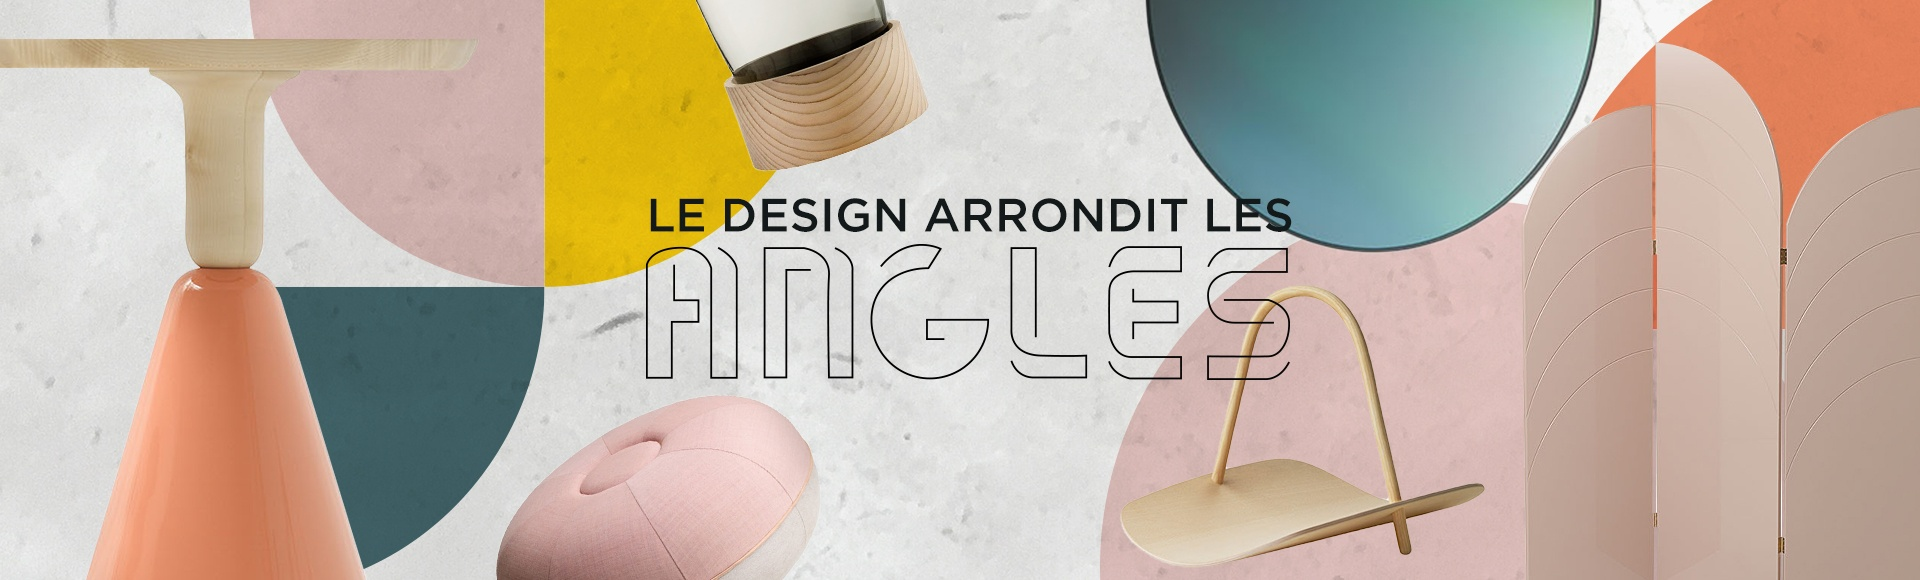 Le Design arrondi les angles